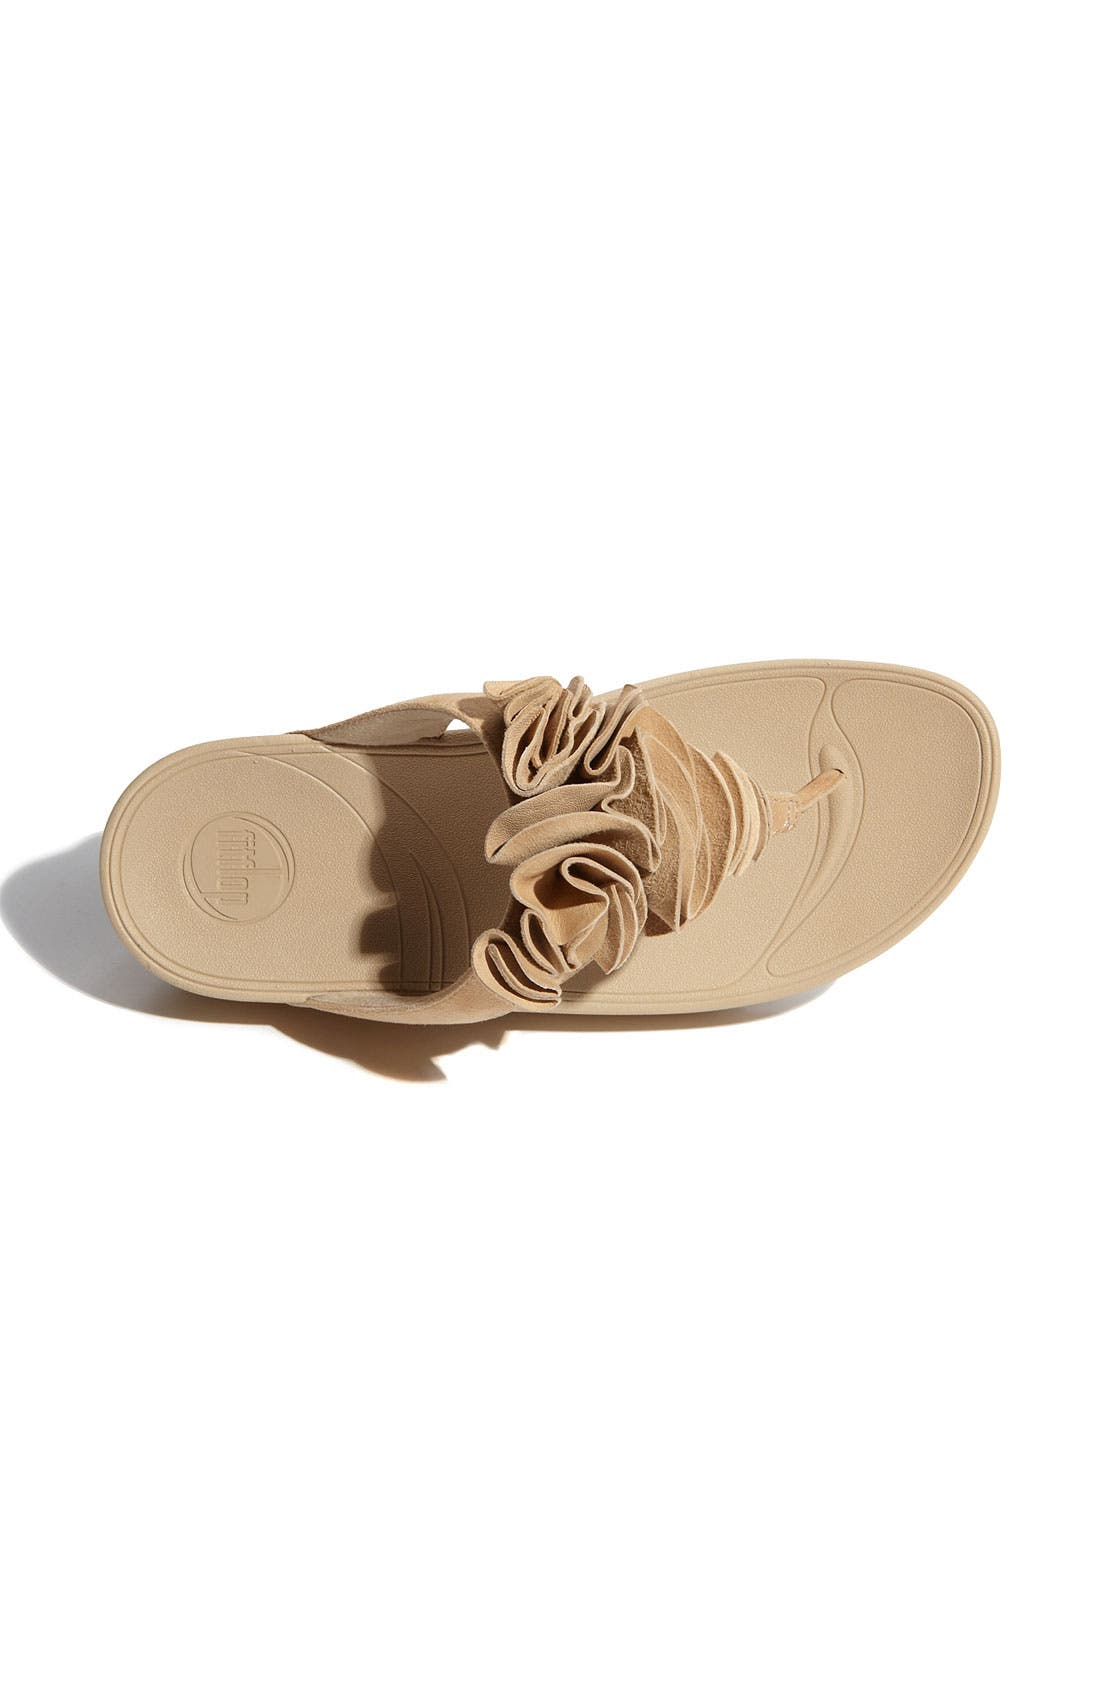 Alternate Image 3  - FitFlop 'Frou™' Sandal